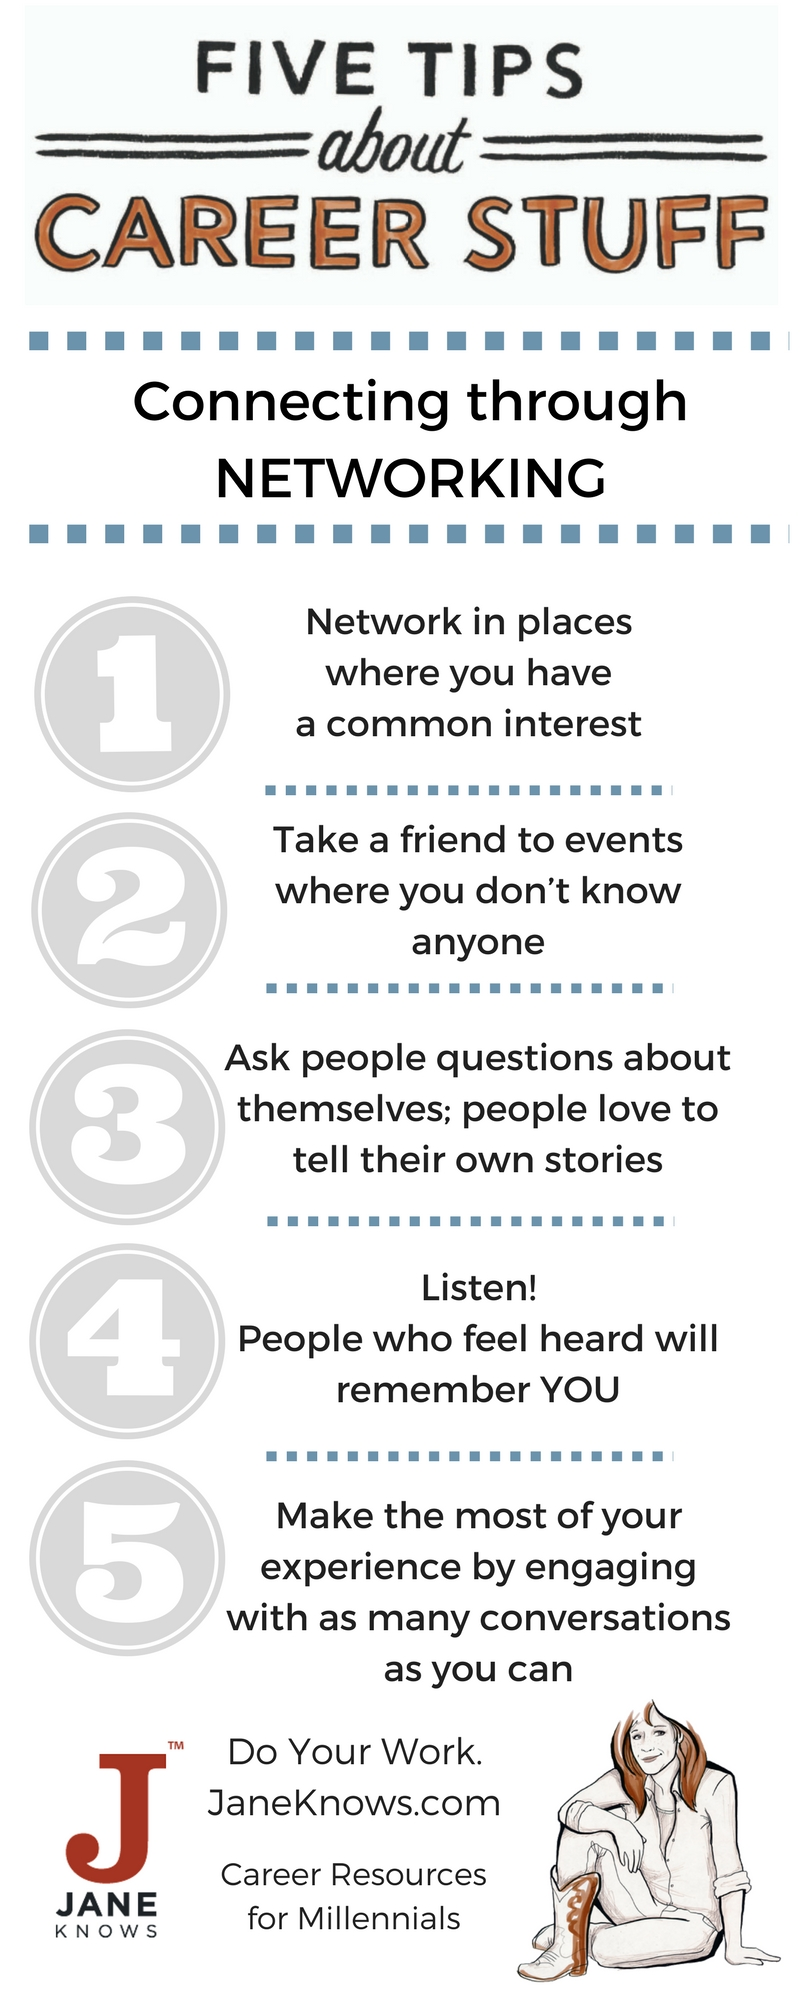 Connecting Through NETWORKING - Infographic